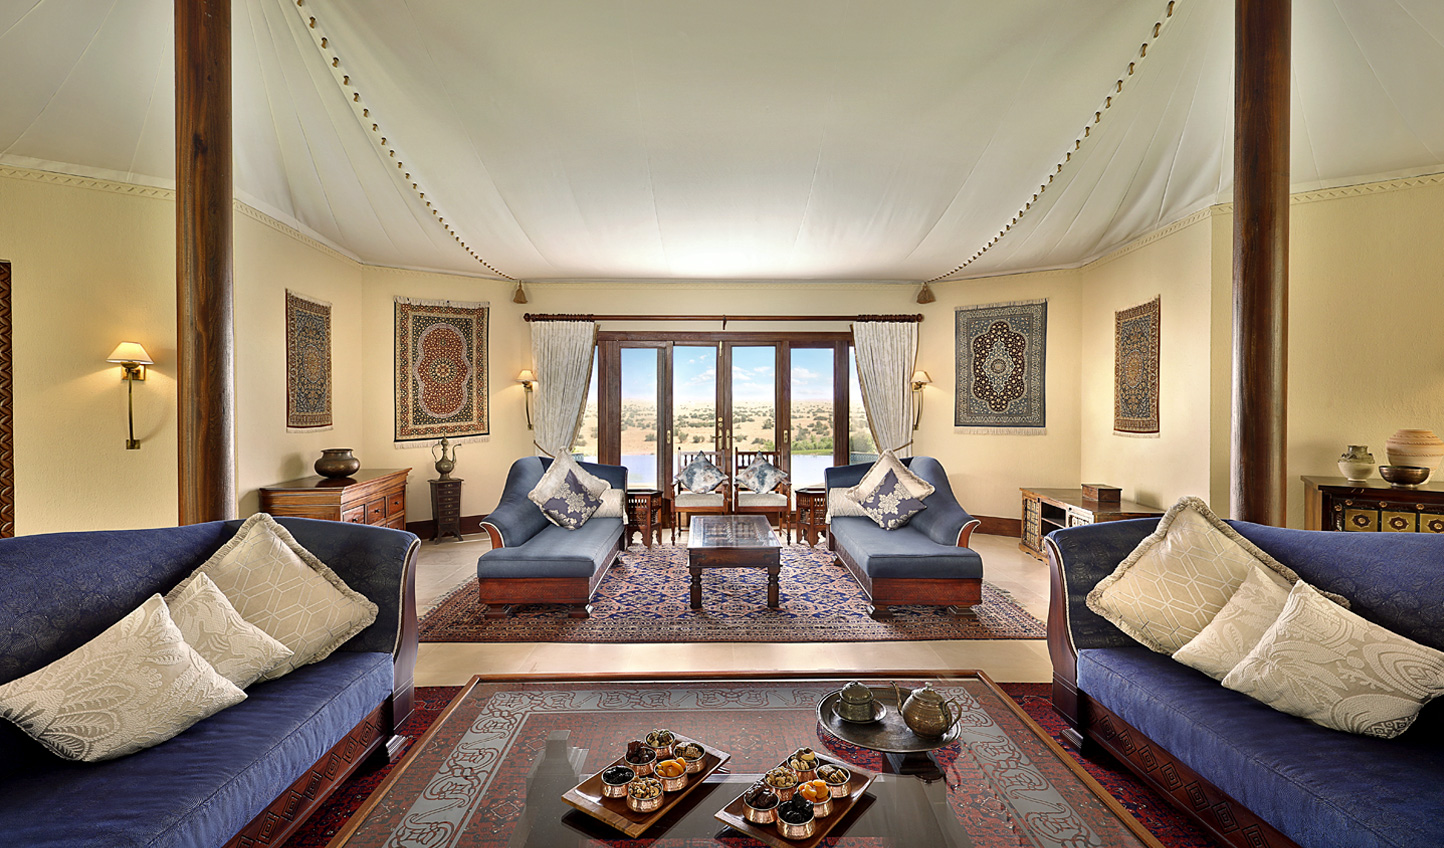 If you must leave the wonders of the desert and the resort, let it be for good reason and stay in the Presidential Suite